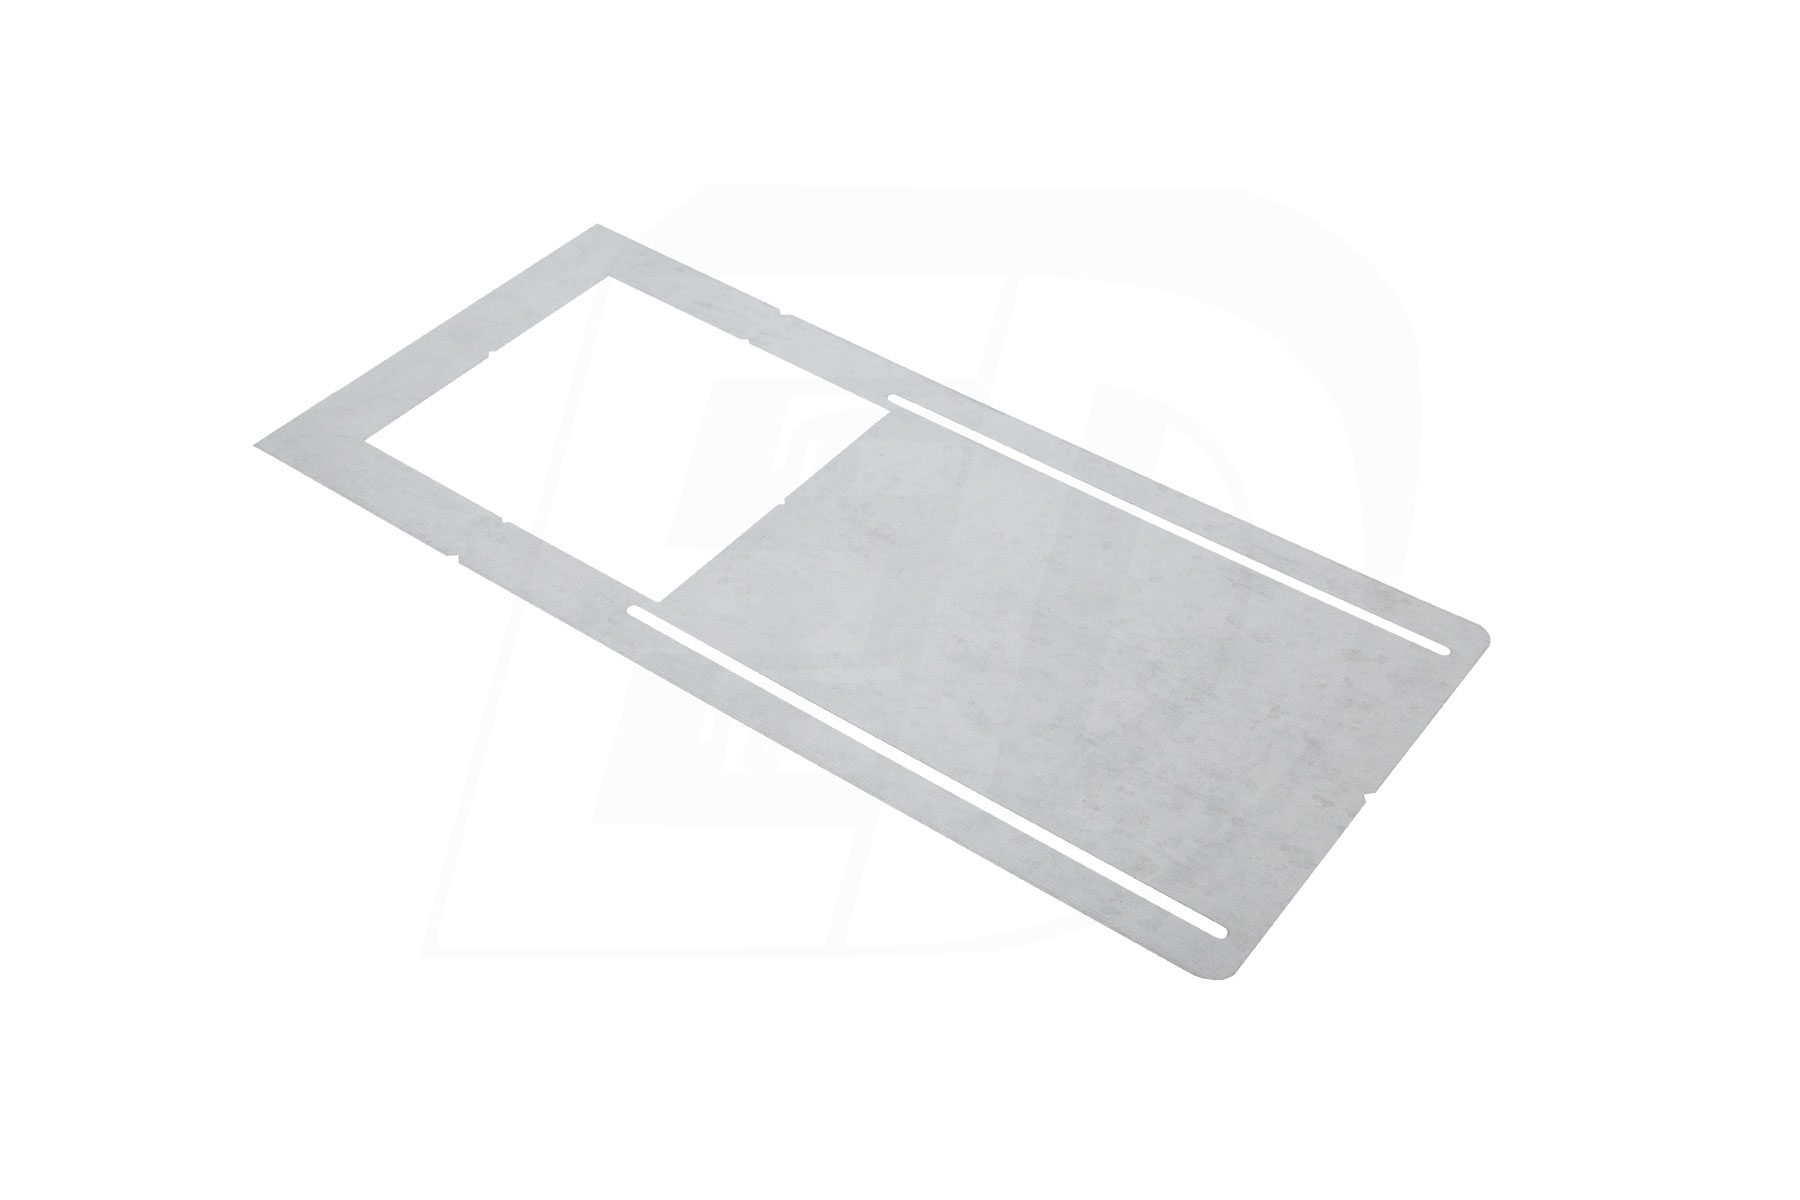 Square Hole Cut Pre-Mounting Plate for DLS 6 Inch. Square Integrated LED Ultra Thin Canless Recessed Lighting